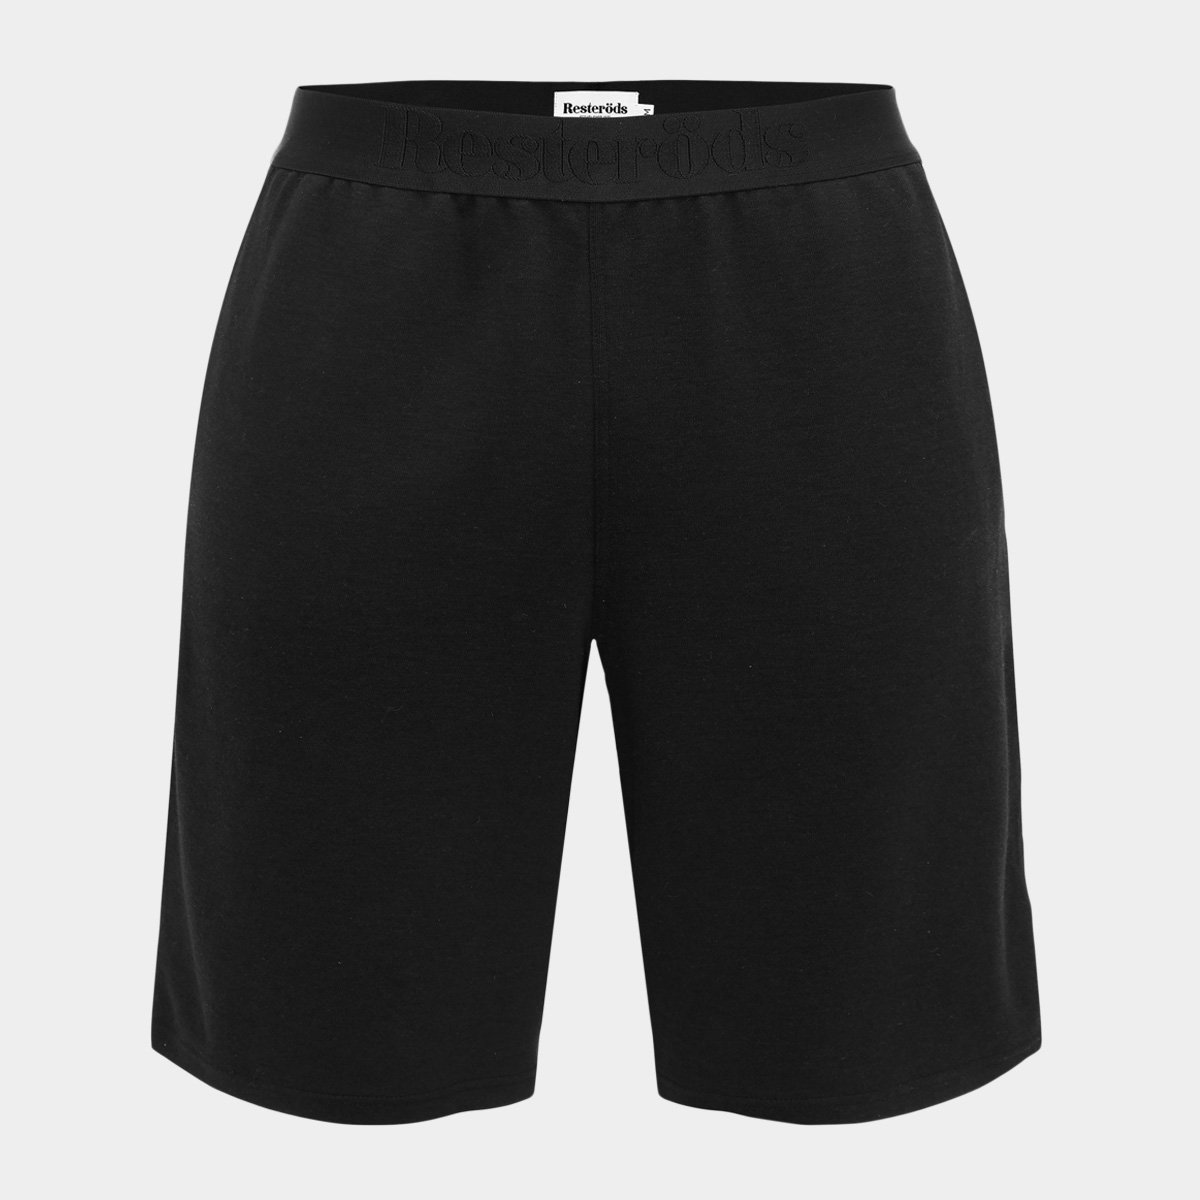 Image of   Bambus sweatshorts I sort